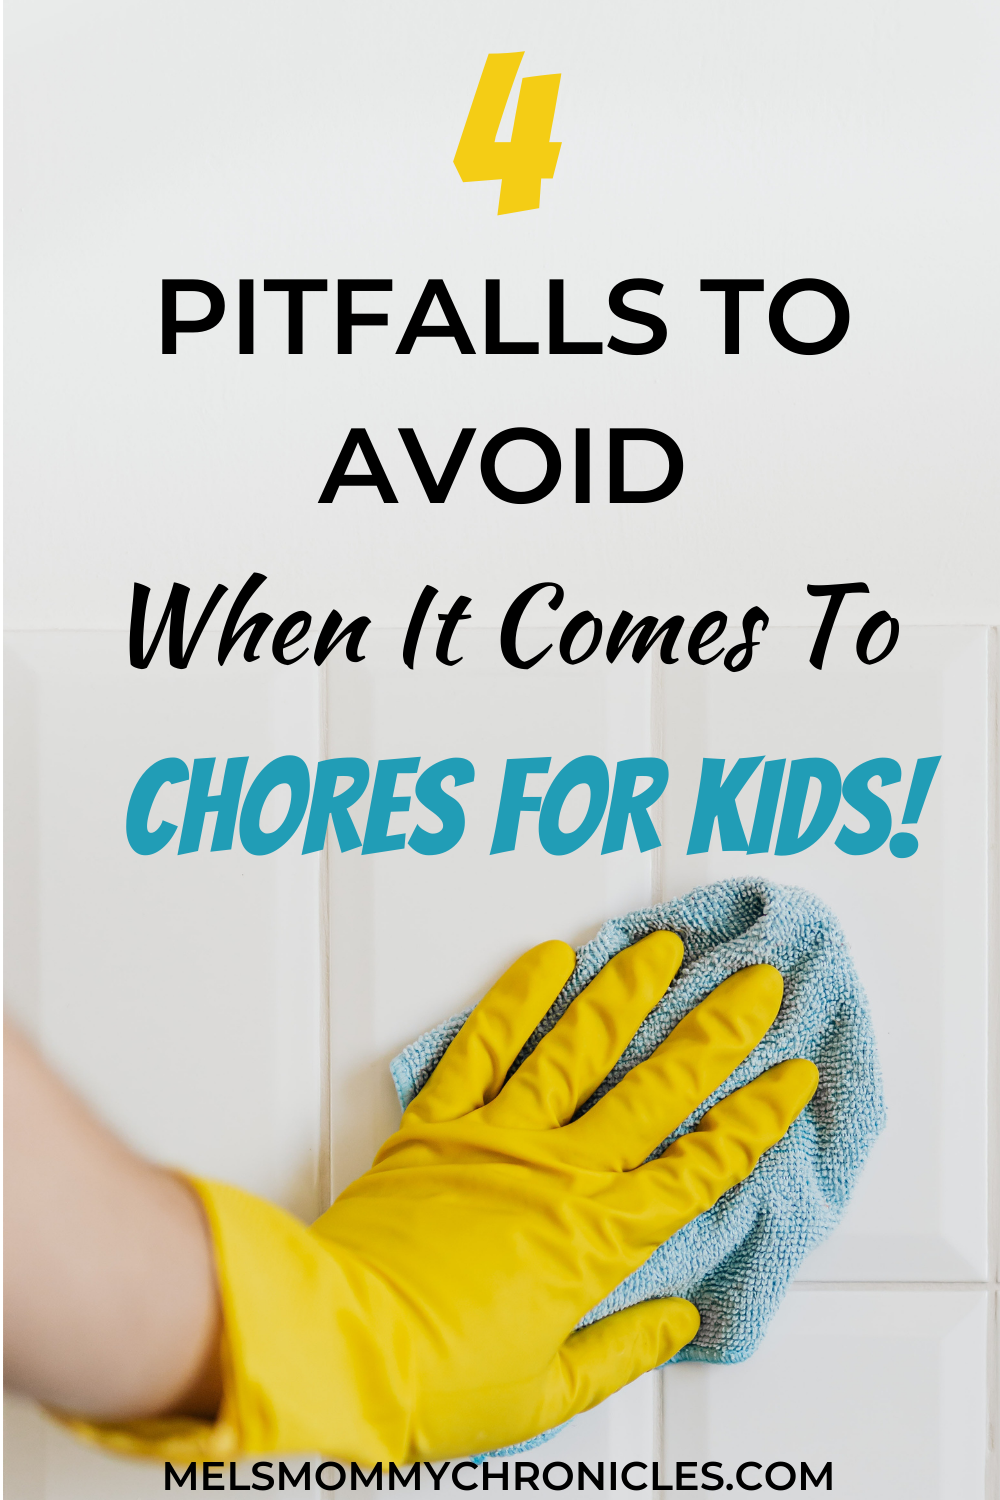 45+ Age-appropriate Chores for Kids (Of All Ages!)